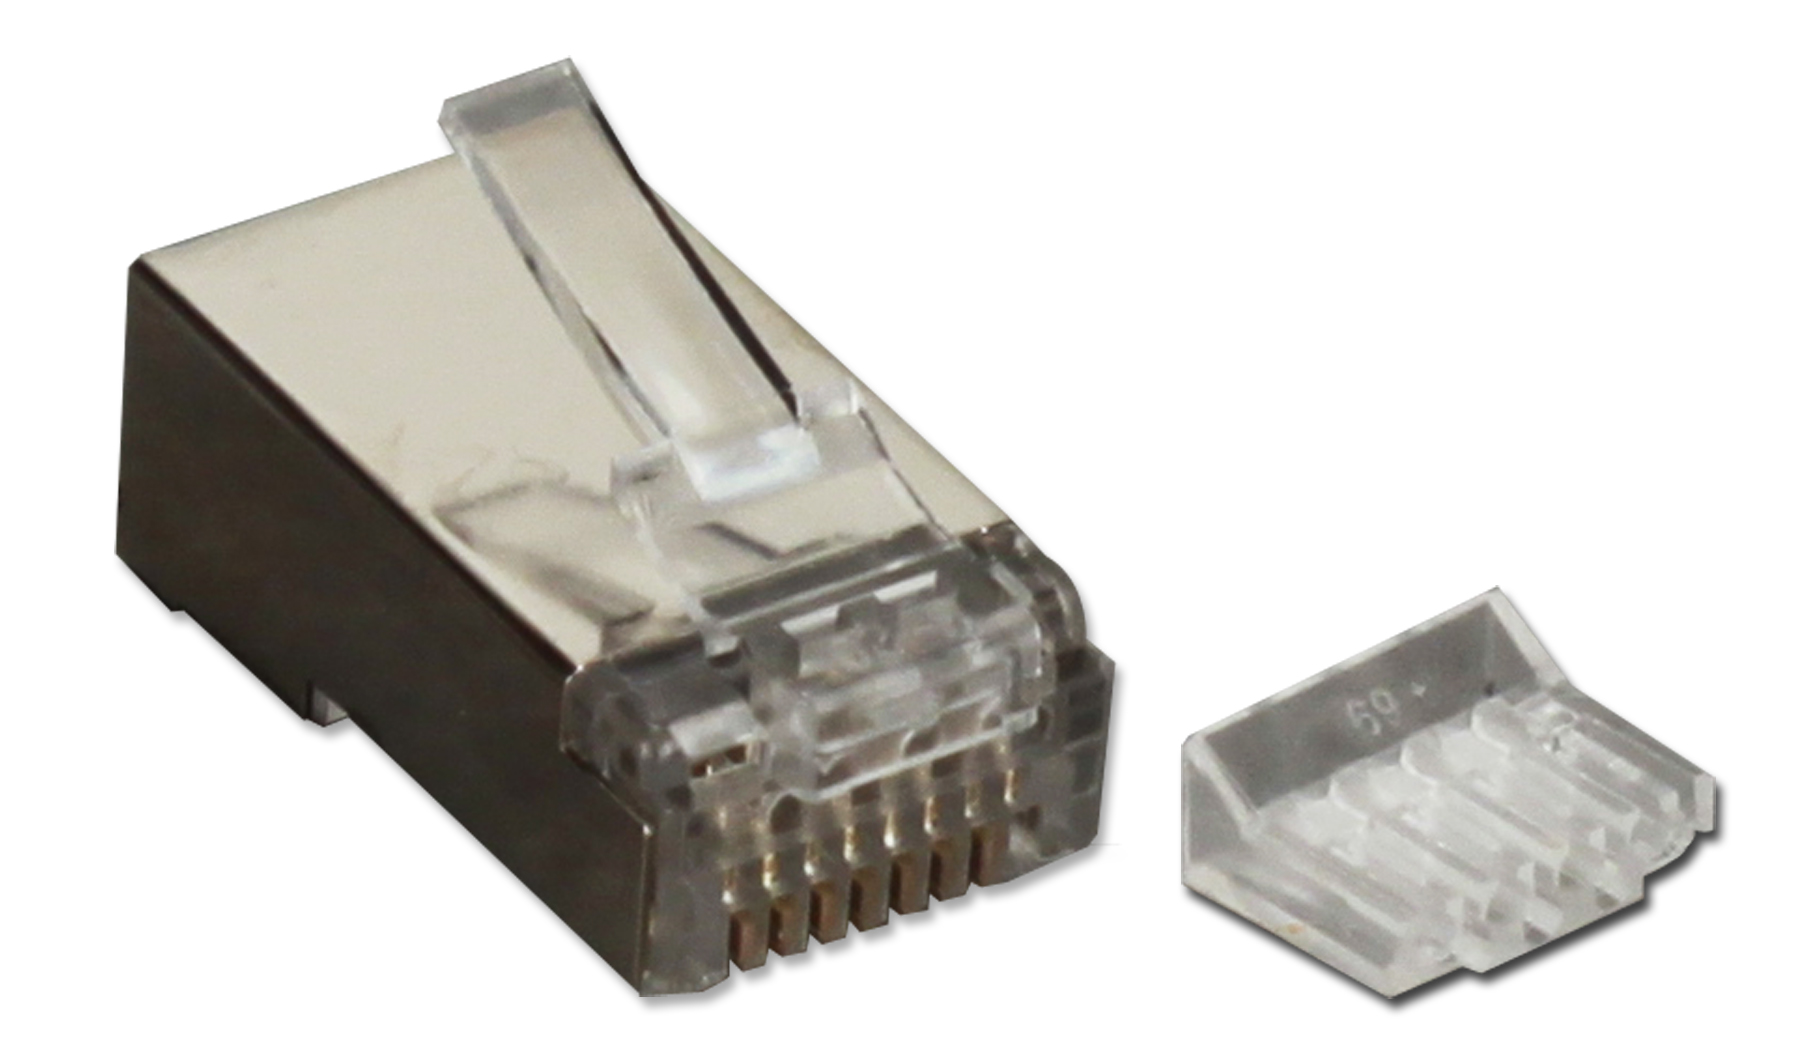 Cr6sd 100s 100pcs Cat6 Shielded Crimp Connector With Insert The Wiring Of Conductors To Rj45 Has Also Been Established By Supports All And Other High Speed Applications Works Cat5 Cat3 Any Rev1 Maximum Wire Awg 24